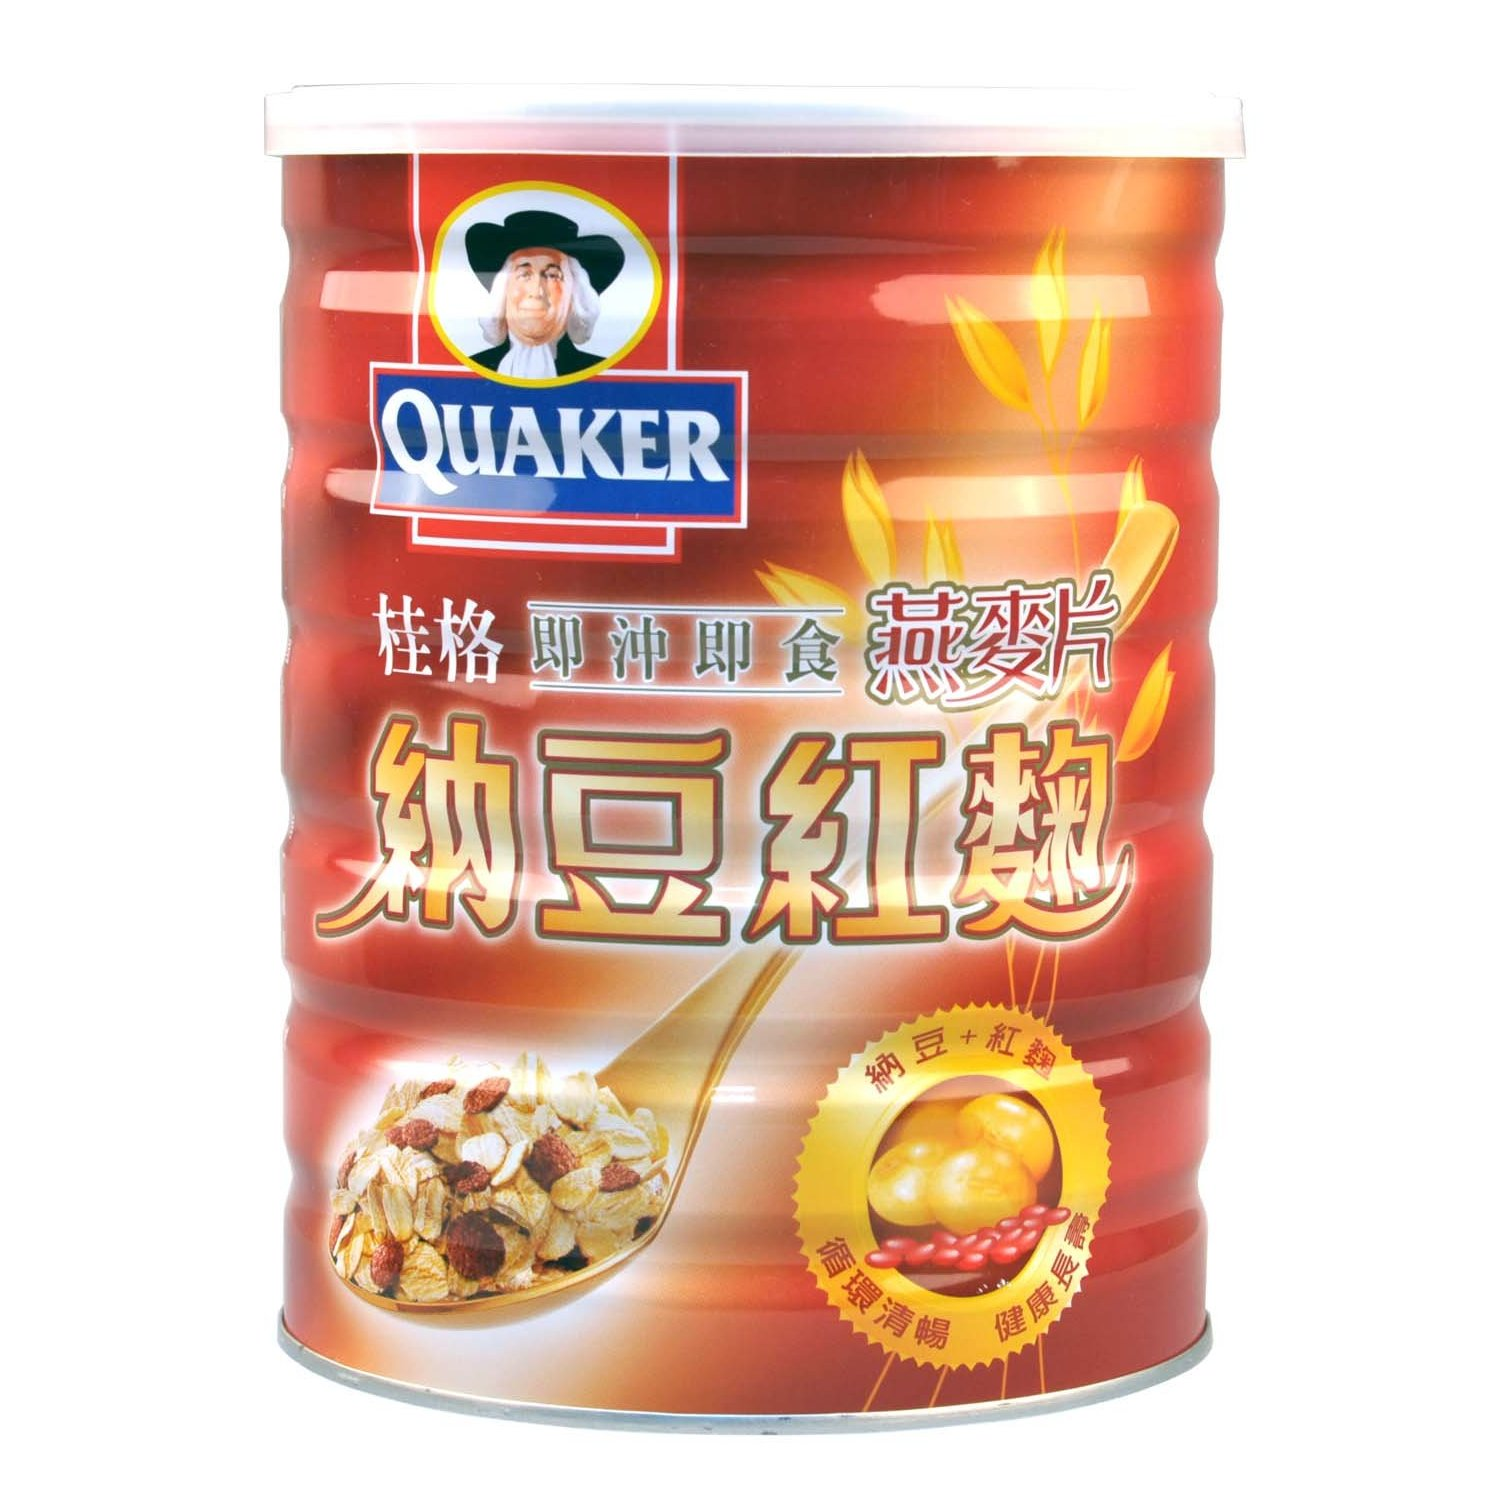 [Supermarket] lynx natto red yeast rice imported from taiwan quaker oatmeal 700g/cans